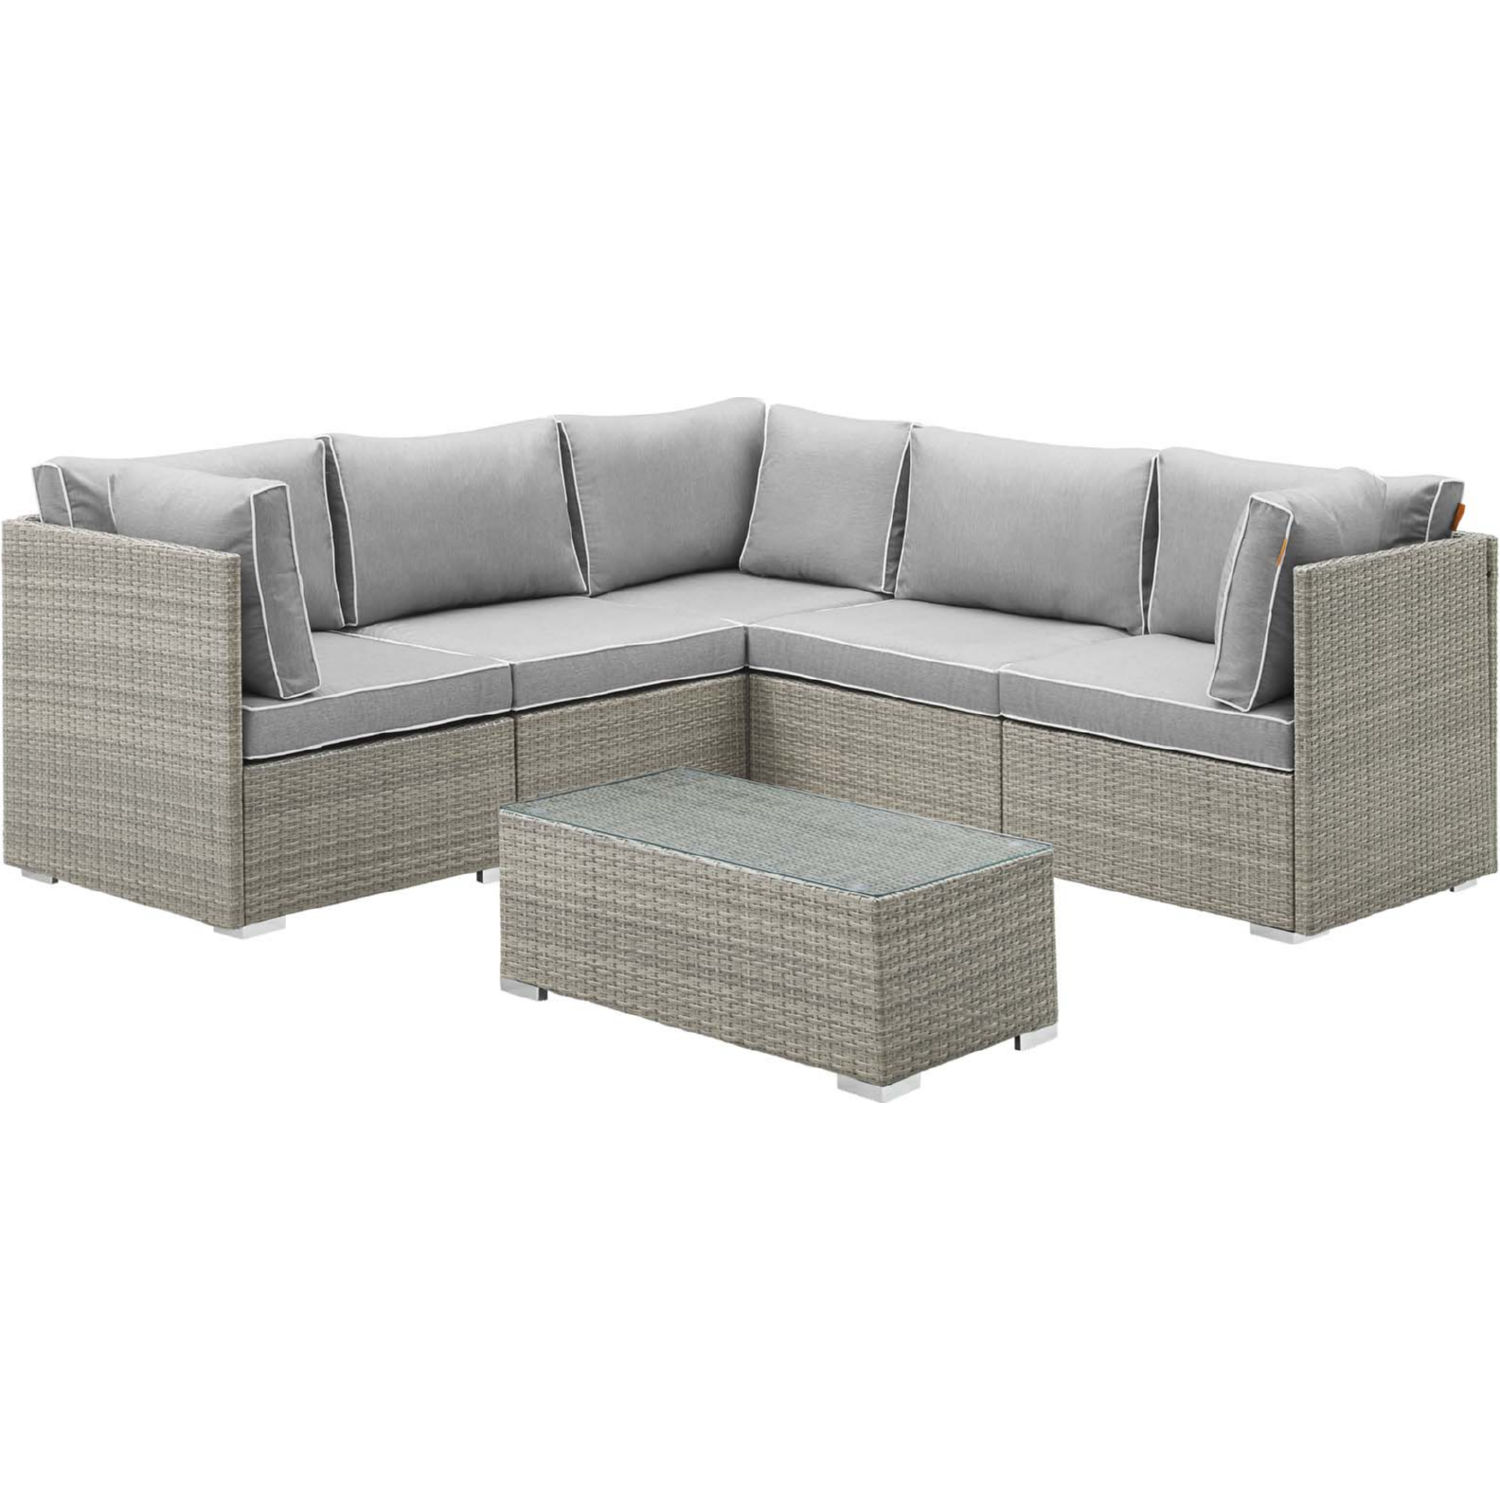 Repose 6 Piece Outdoor Sectional Sofa Set in Gray w/ Gray Fabric by Modway